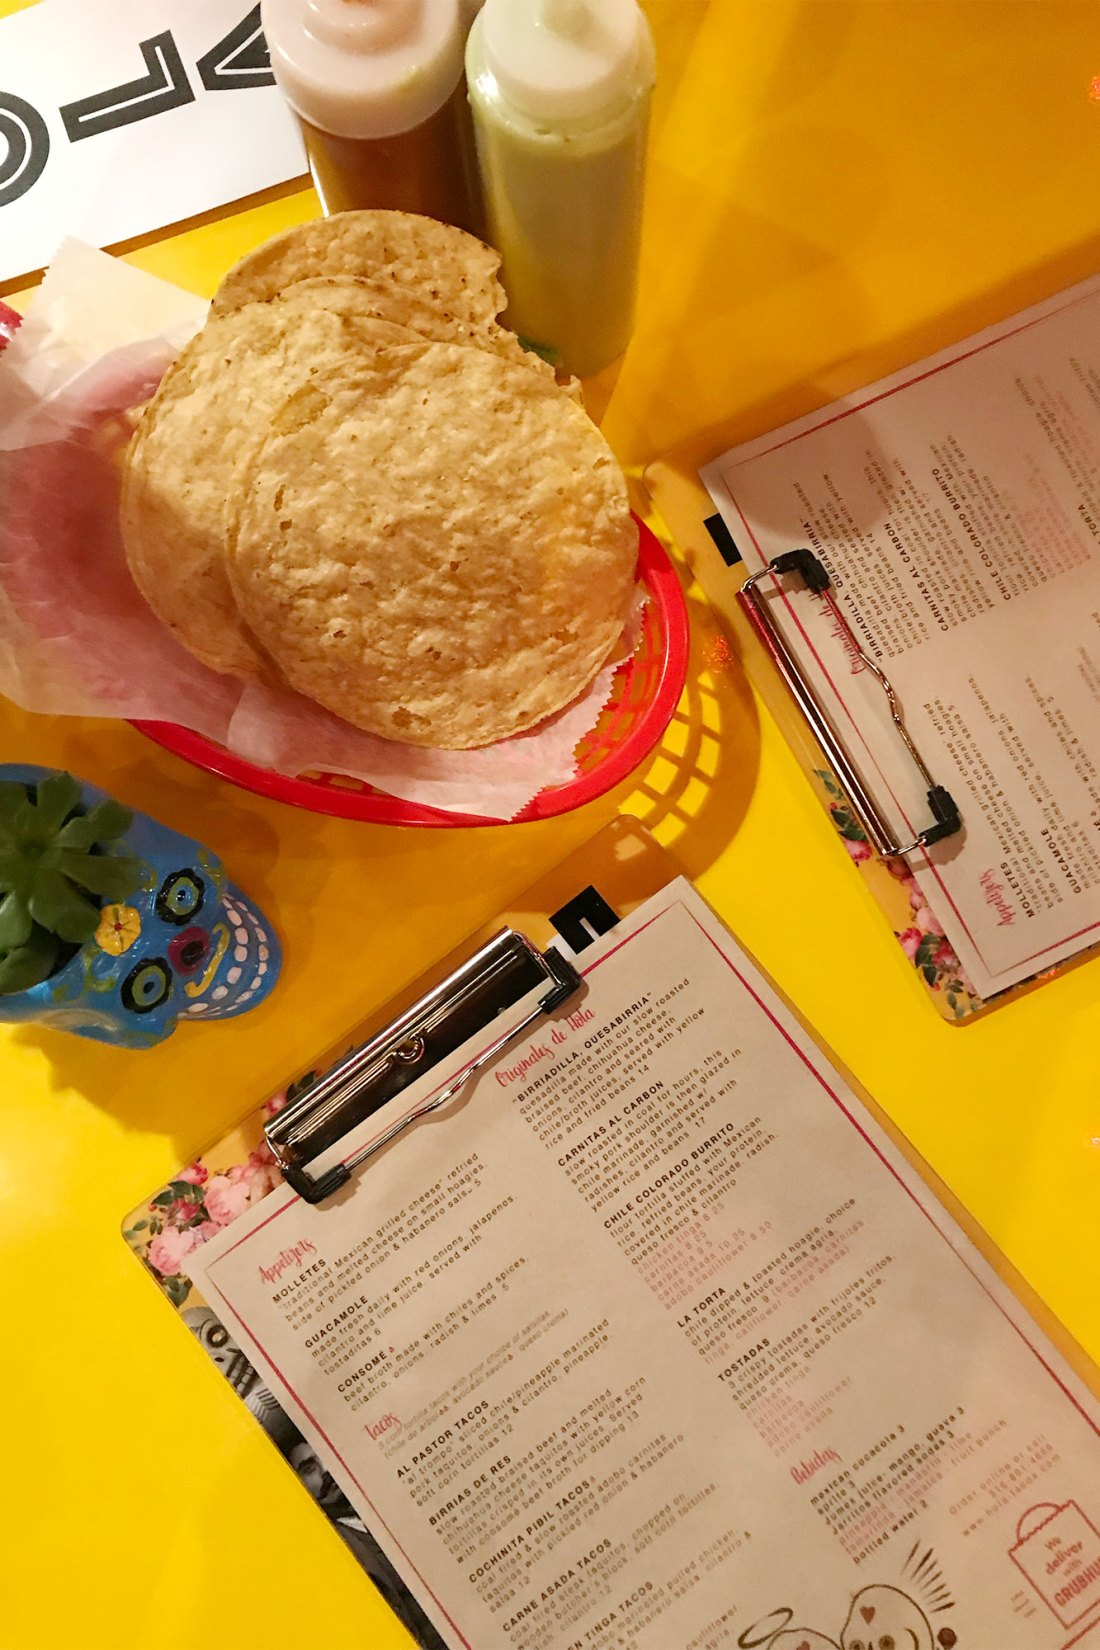 Menus on bright yellow table